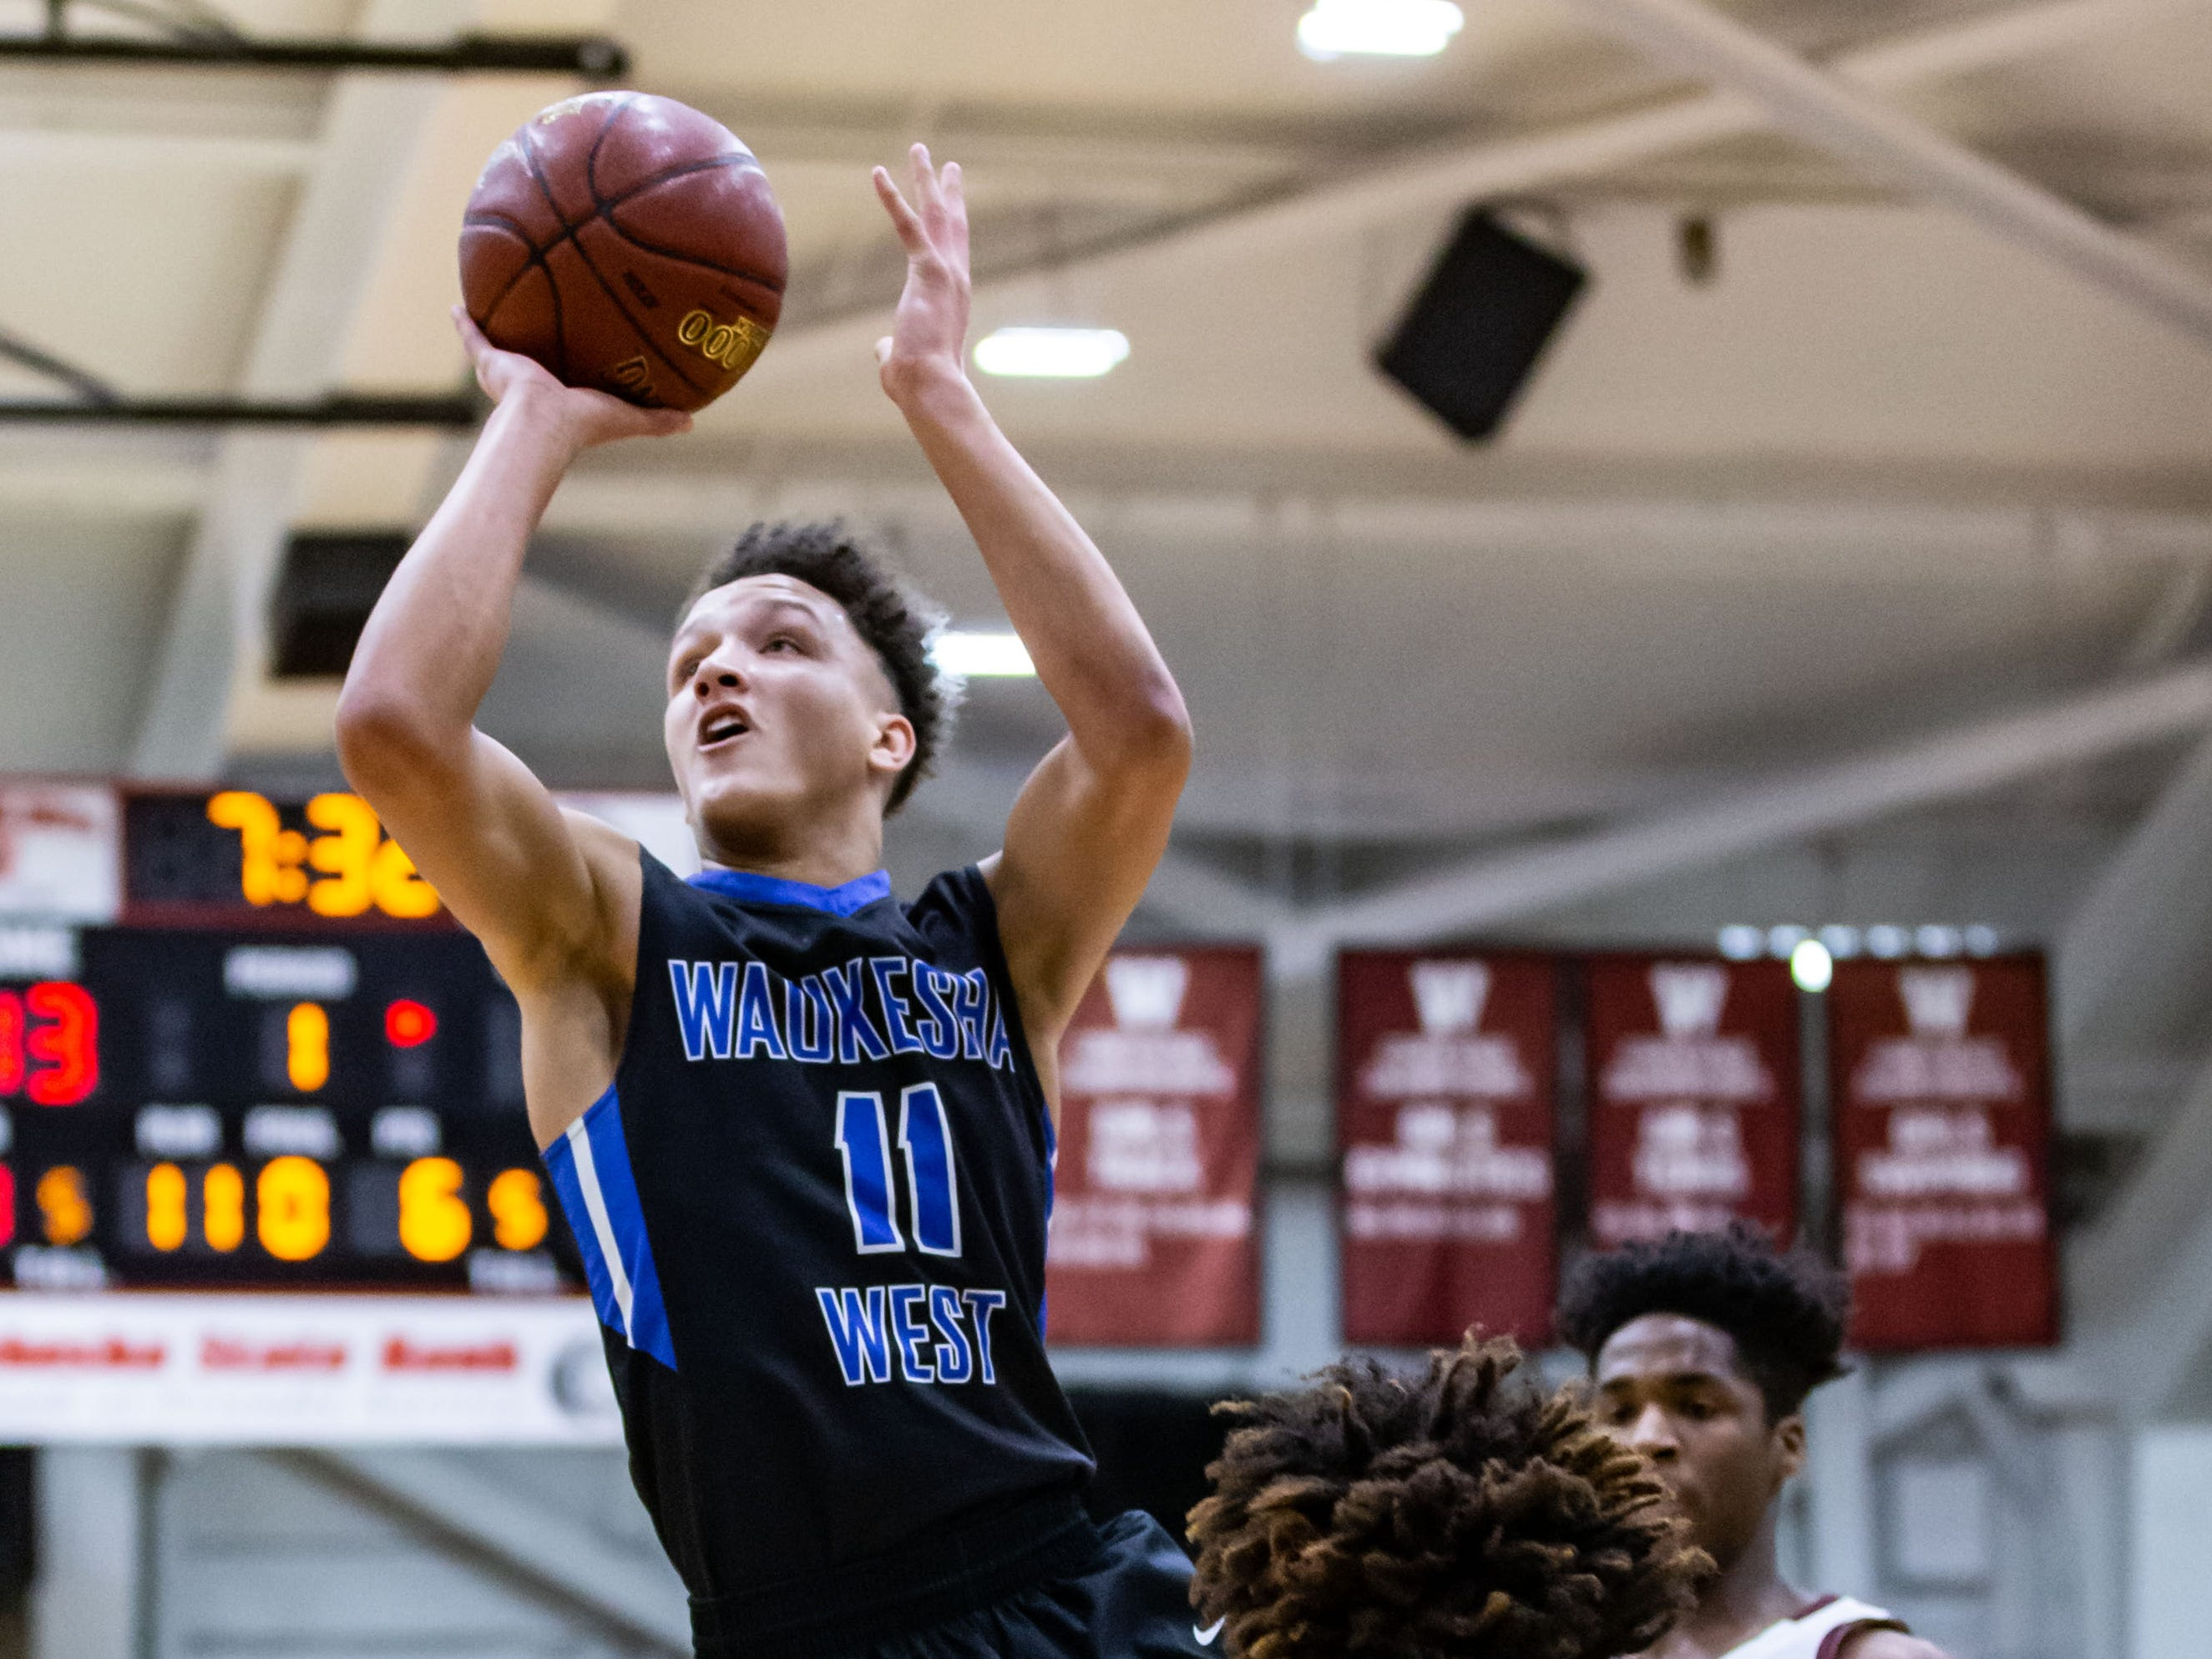 Waukesha West's Cam Palesse (11) takes flight for a shot during the sectional final against West Allis Central at Waukesha South on Saturday, March 9, 2019.